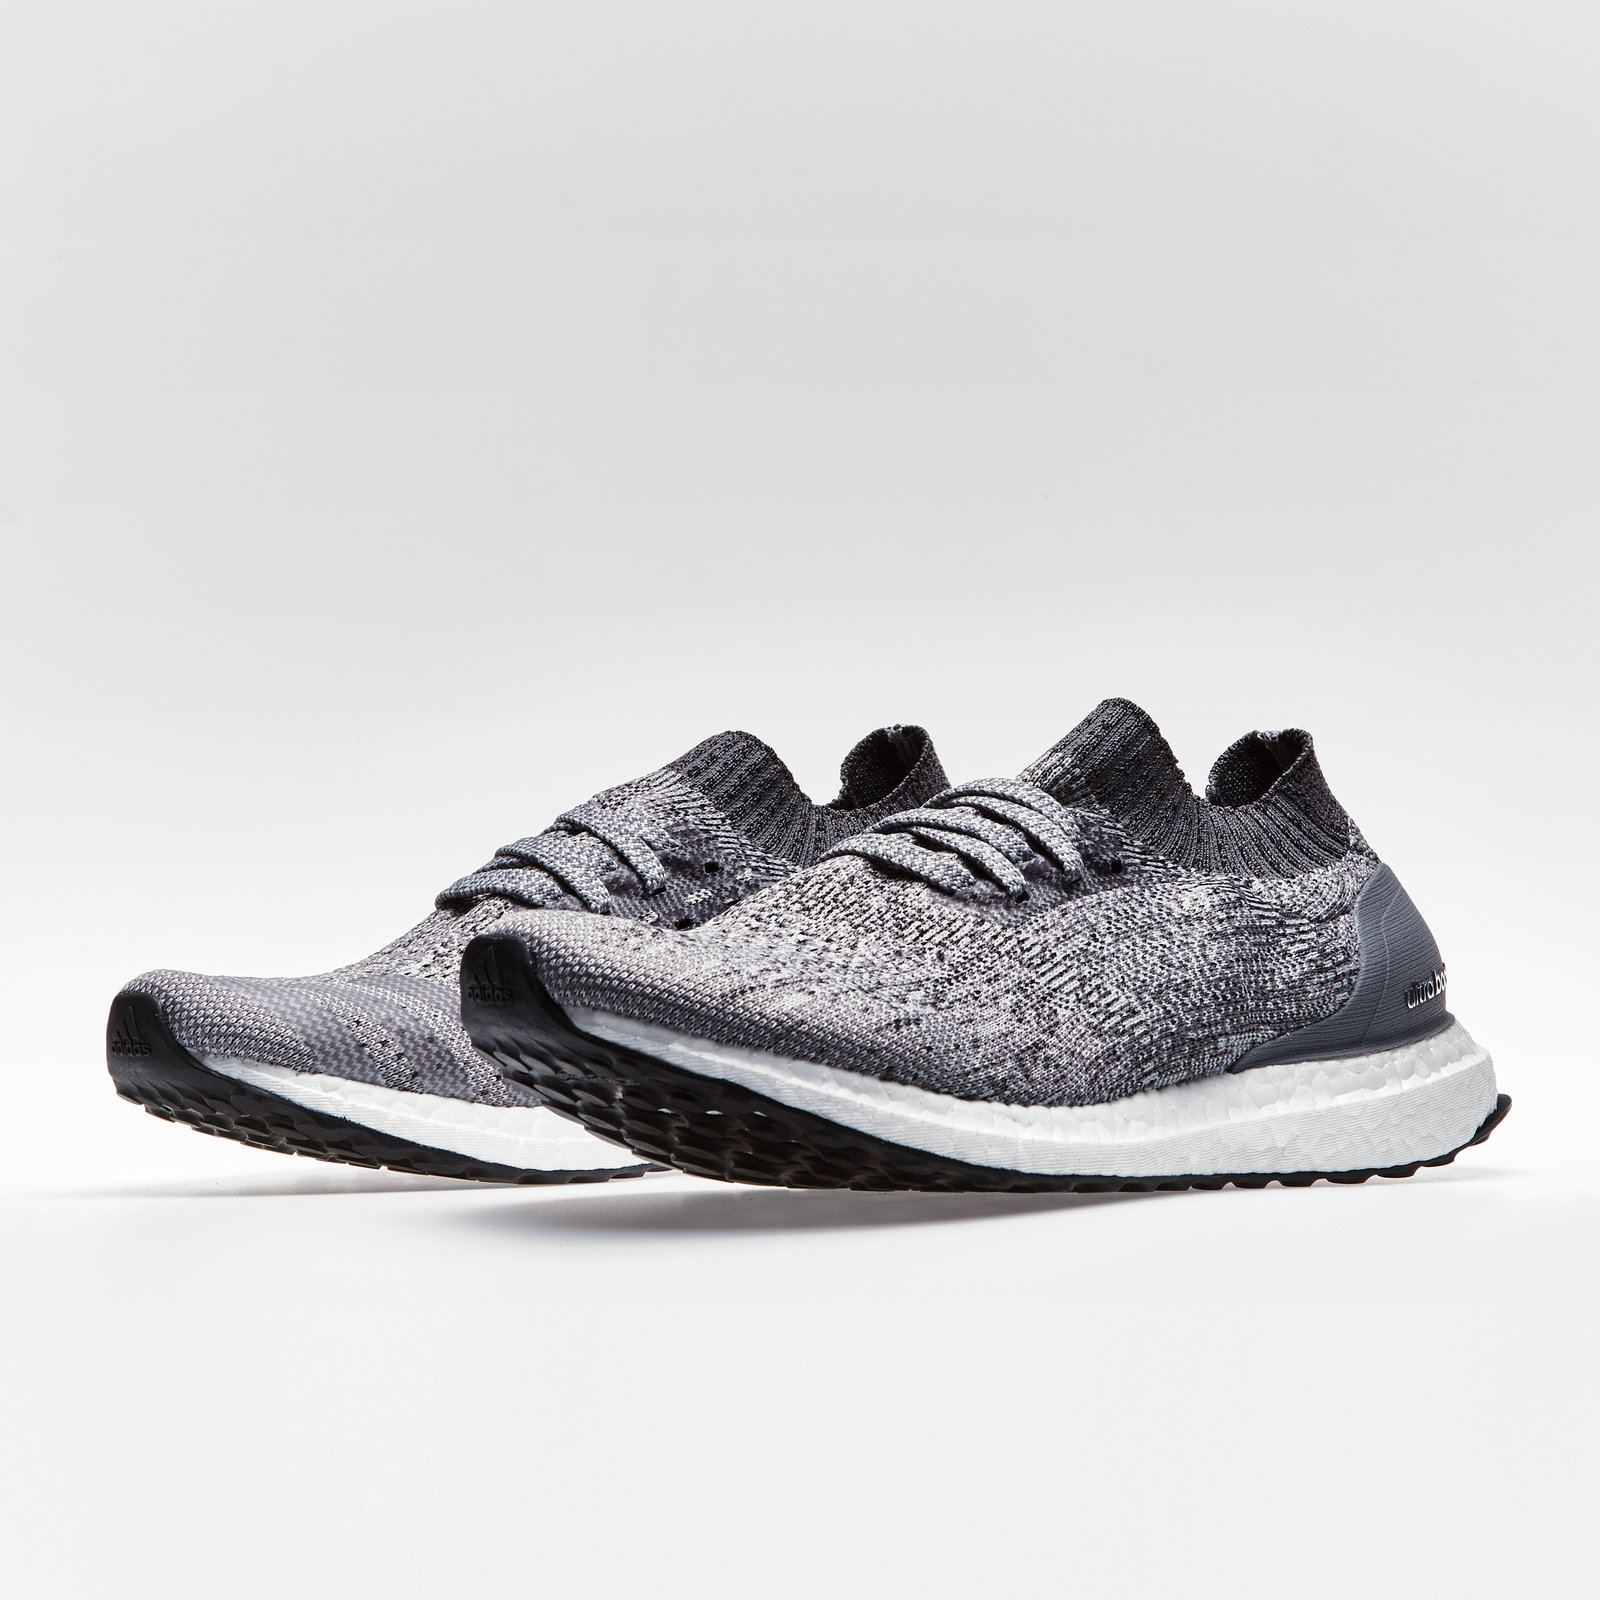 0dc49b127a772 Details about adidas Mens Ultra Boost Uncaged Running Shoes Sports Trainers  Grey Footwear